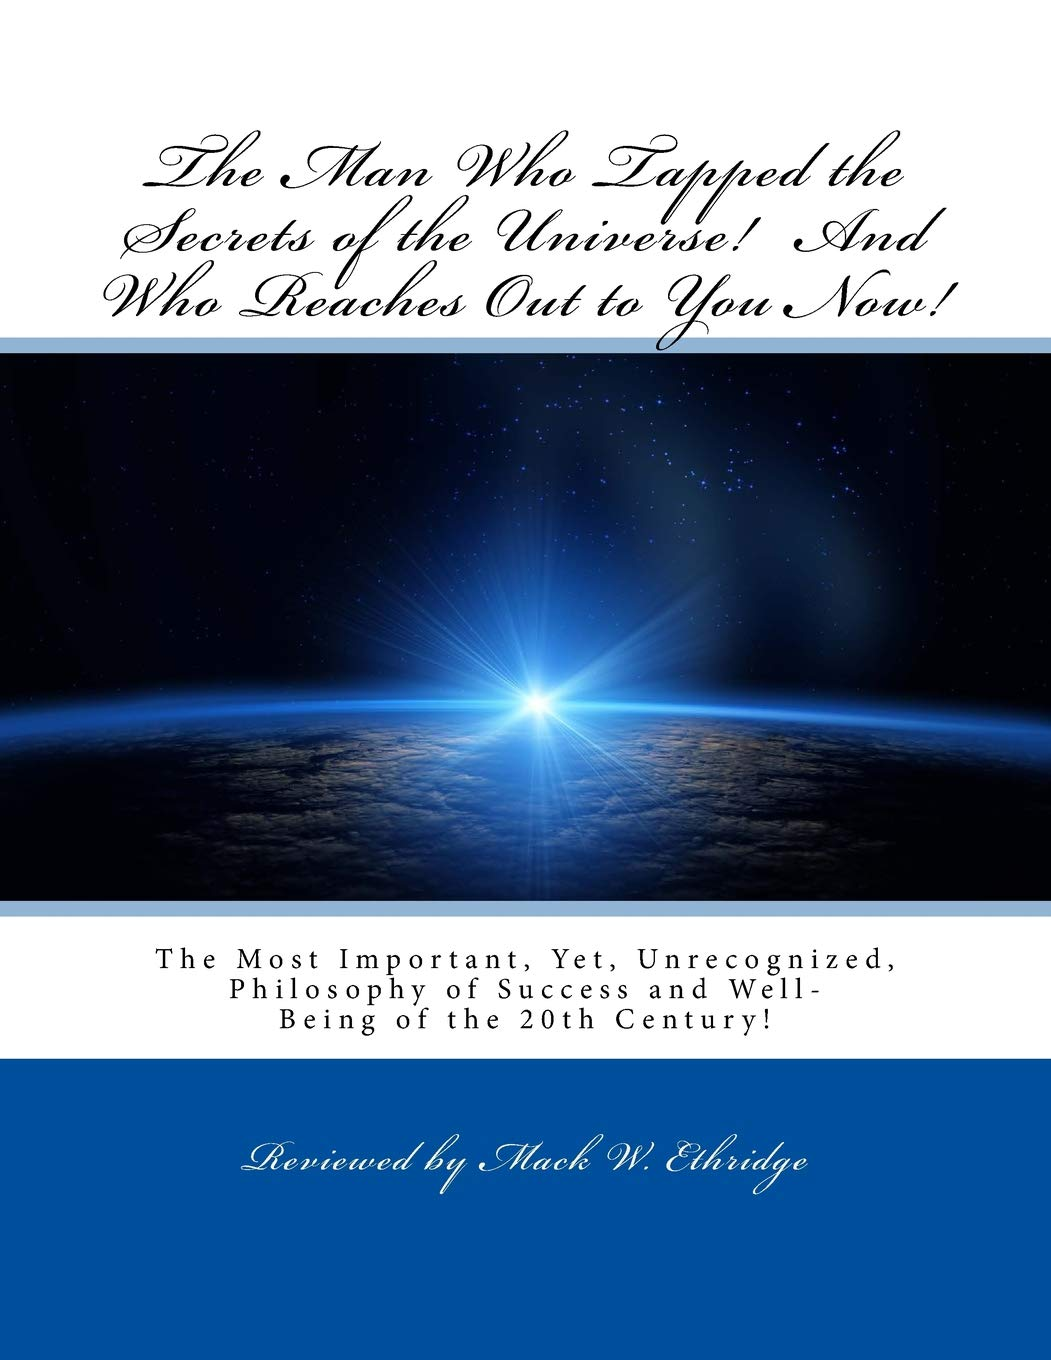 Download The Man Who Tapped the Secrets of the Universe! And Who Reaches Out to You Now!: The Most Important, Yet, Unrecognized, Philosophy of Success and Well-Being of the 20th Century! pdf epub